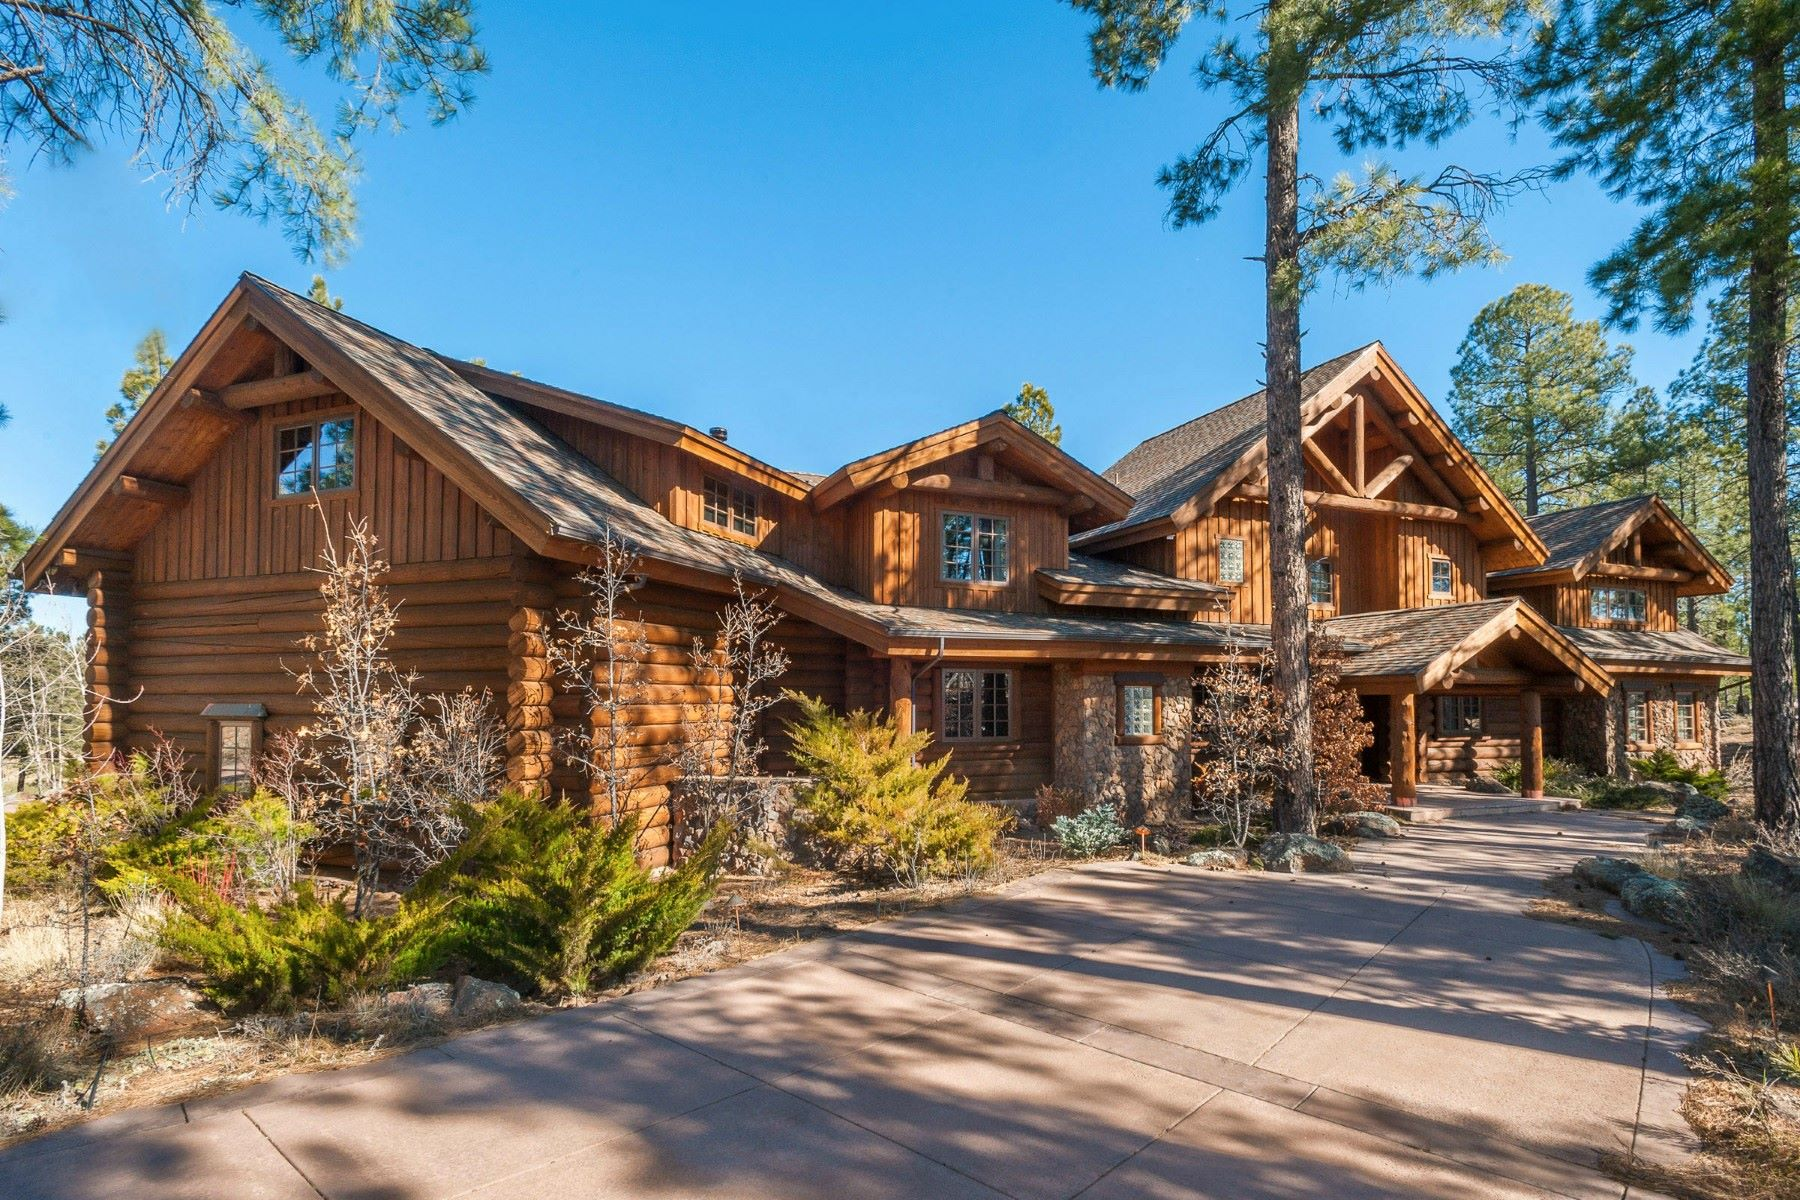 Casa Unifamiliar por un Venta en Magnificent Log Luxury Retreat at Forest Highlands 2892 Andrew Douglass, Flagstaff, Arizona, 86005 Estados Unidos